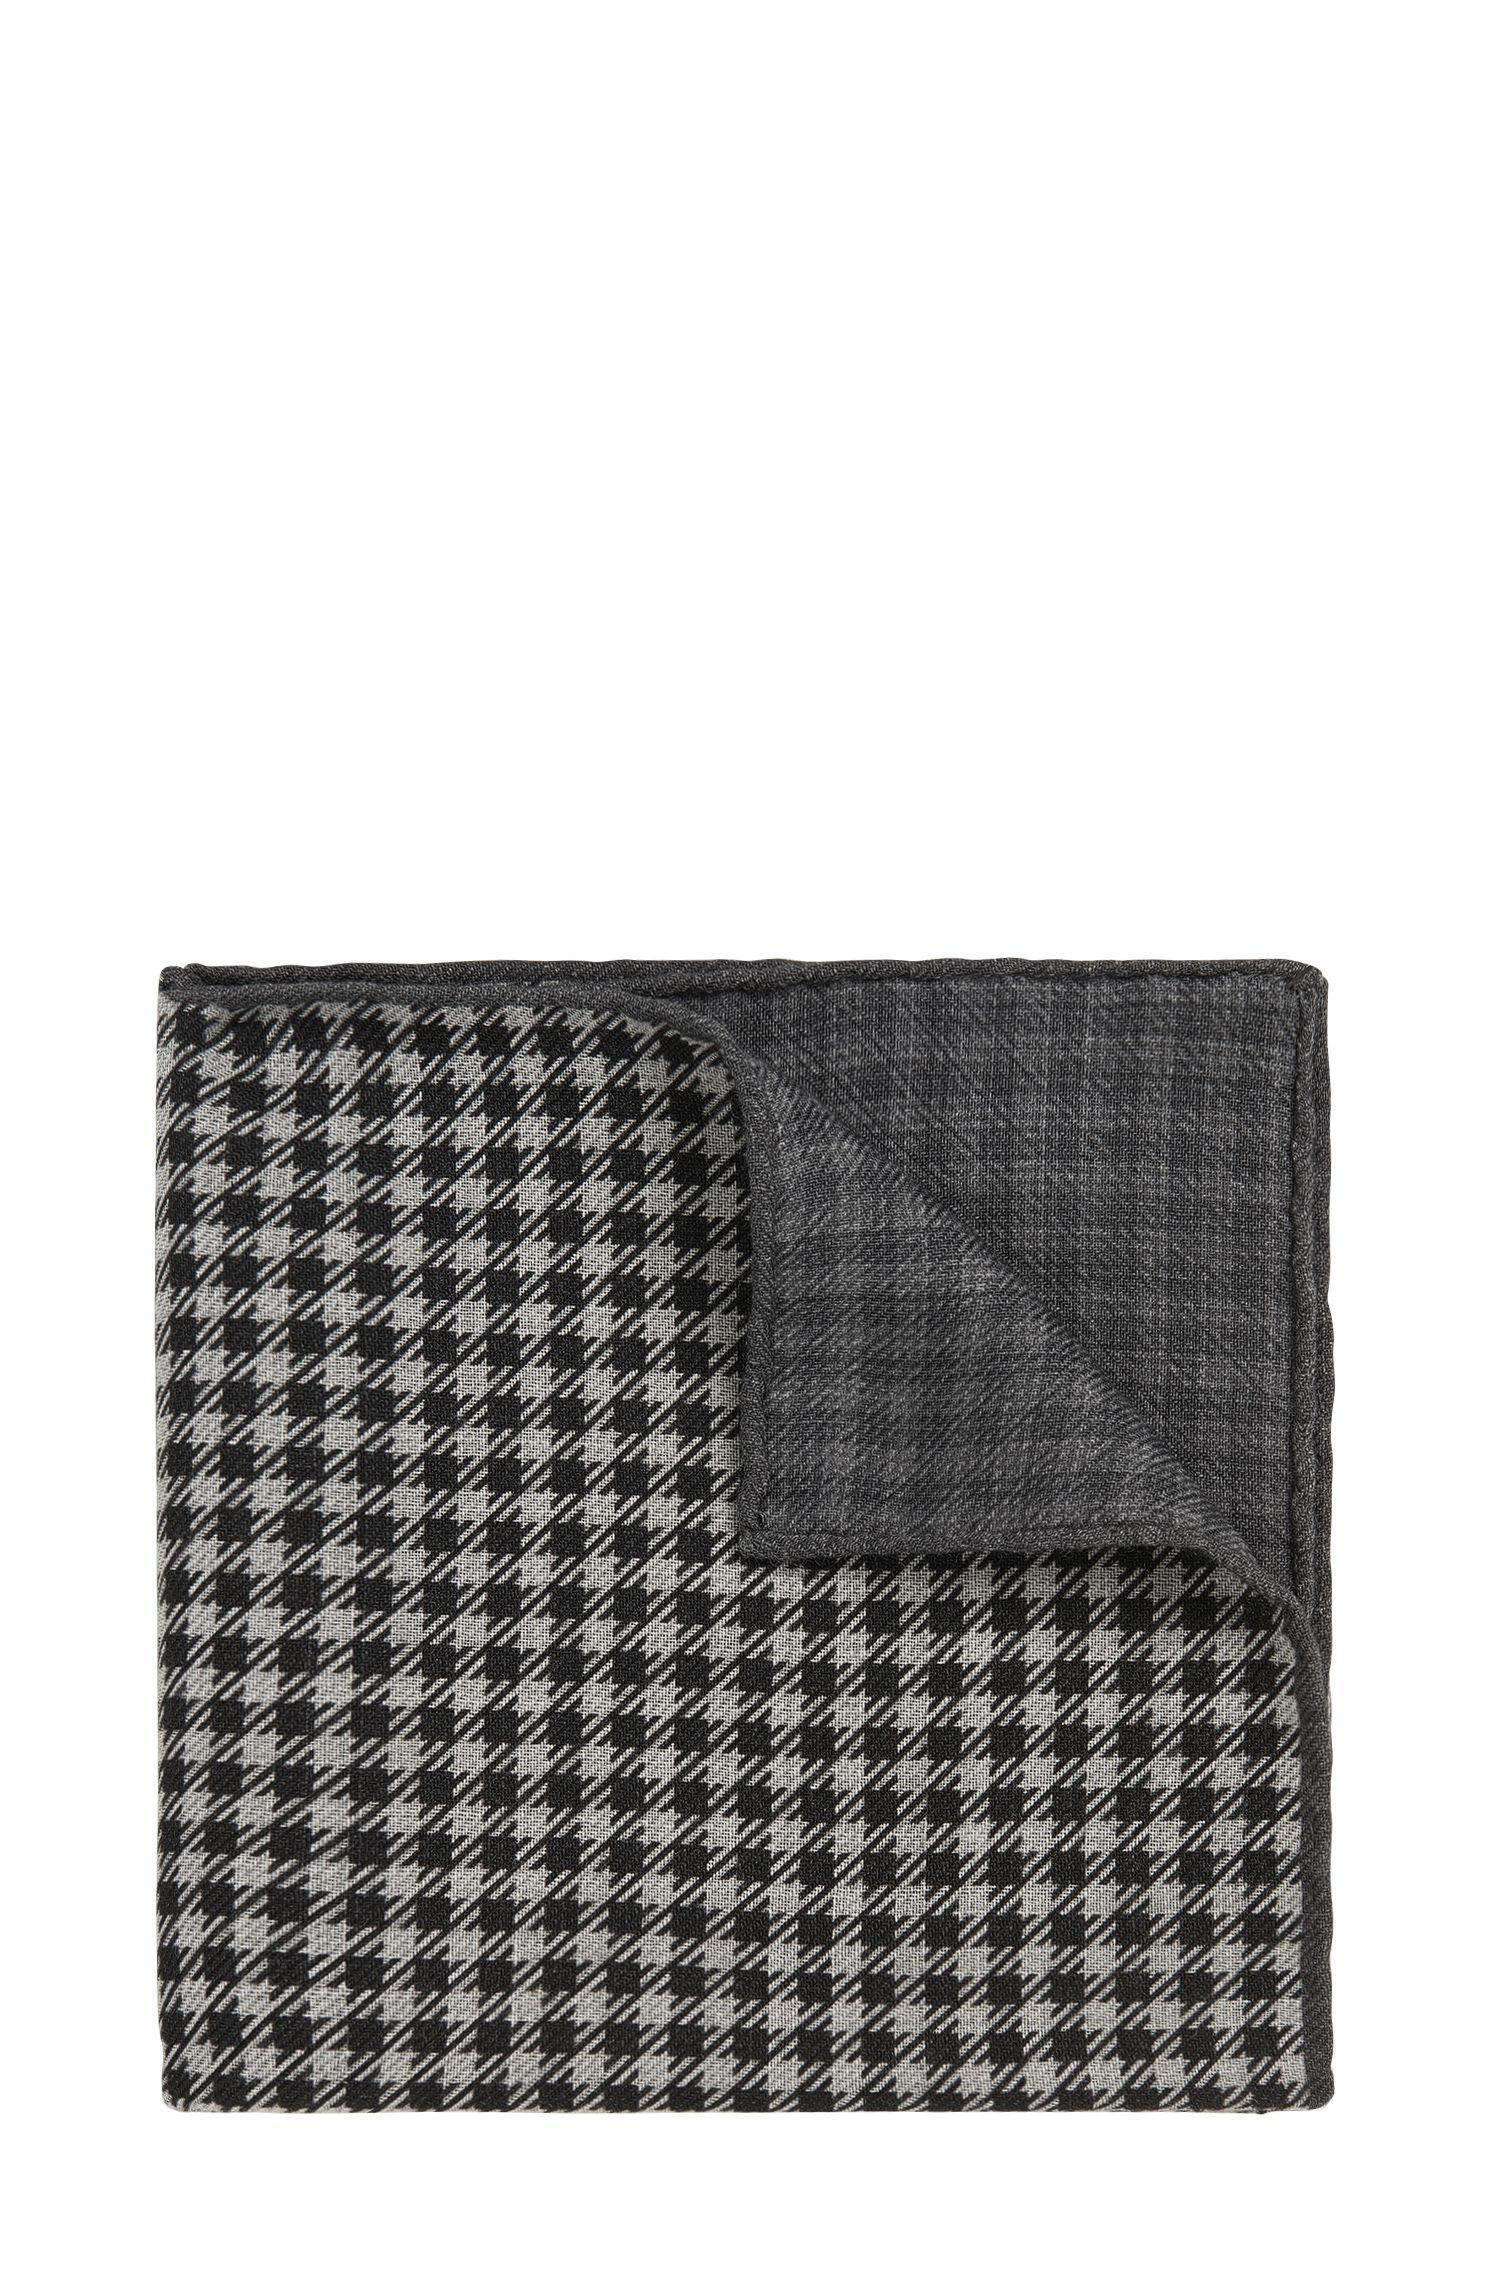 Pochette Tailored à carreaux en laine : « T-Pocket sq. 33x33 cm »